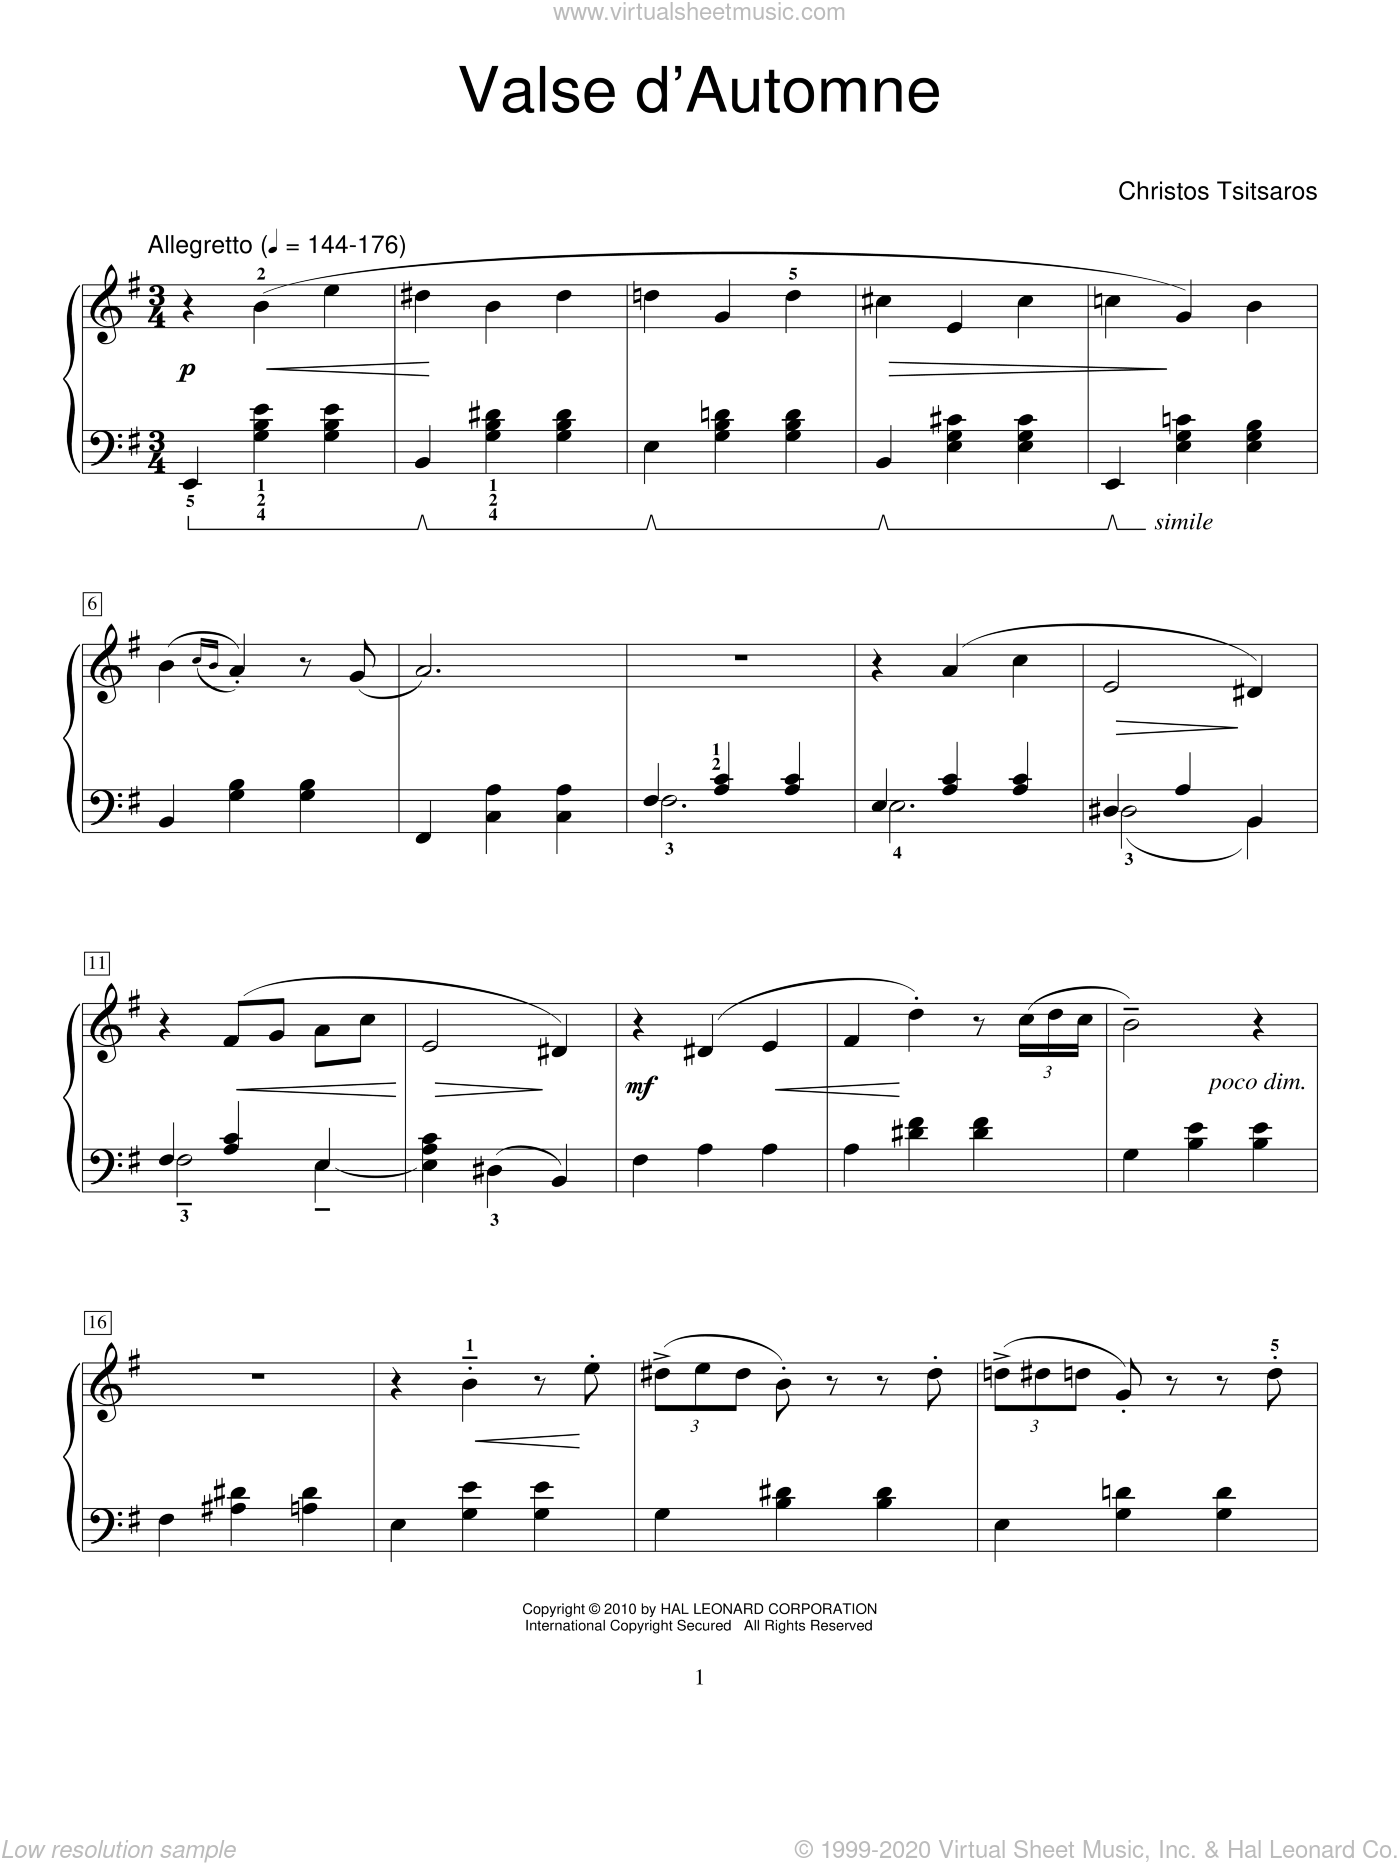 Valse D'Automne sheet music for piano solo (elementary) by Christos Tsitsaros